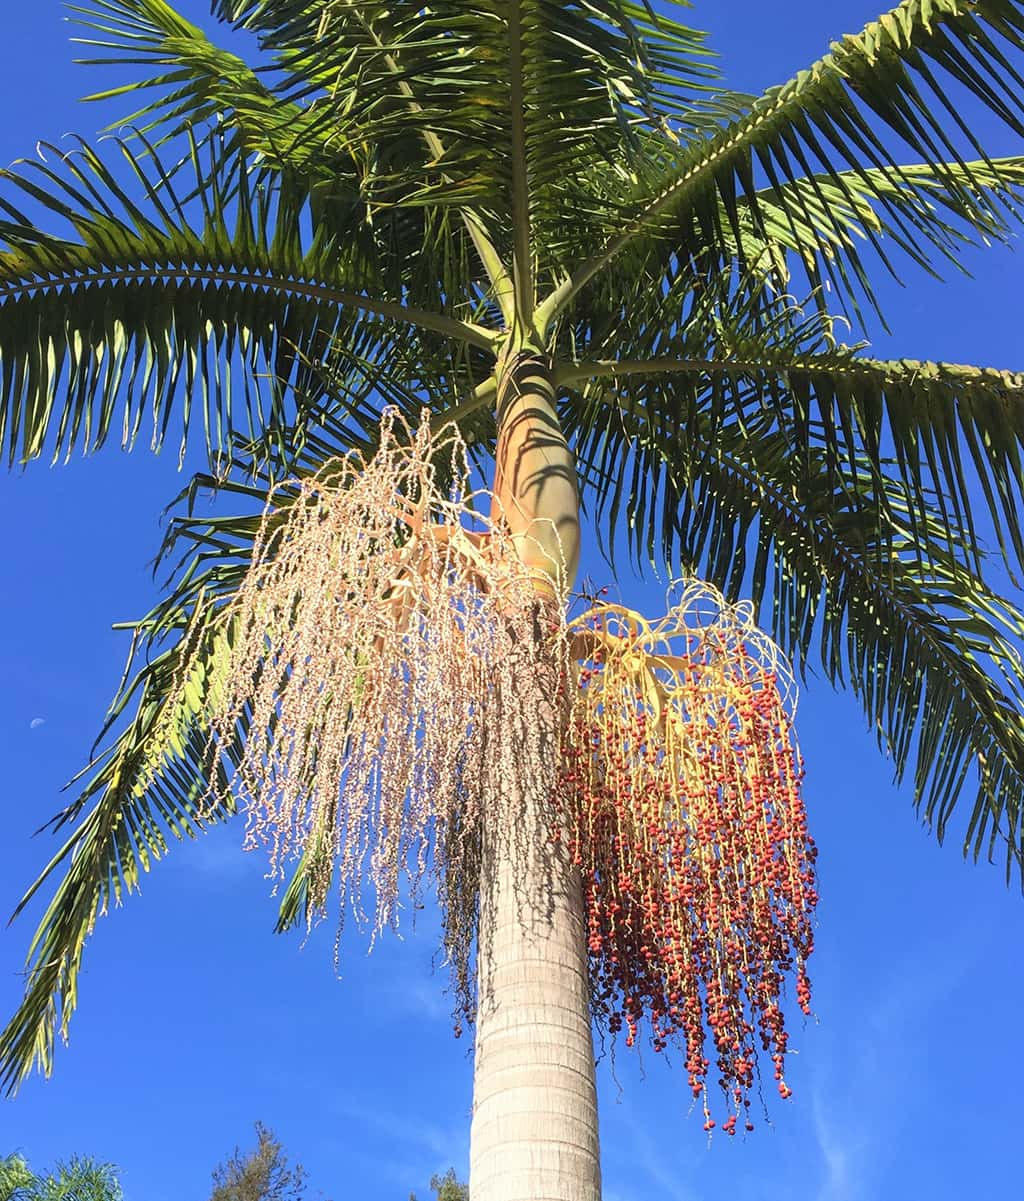 King Palm Tree